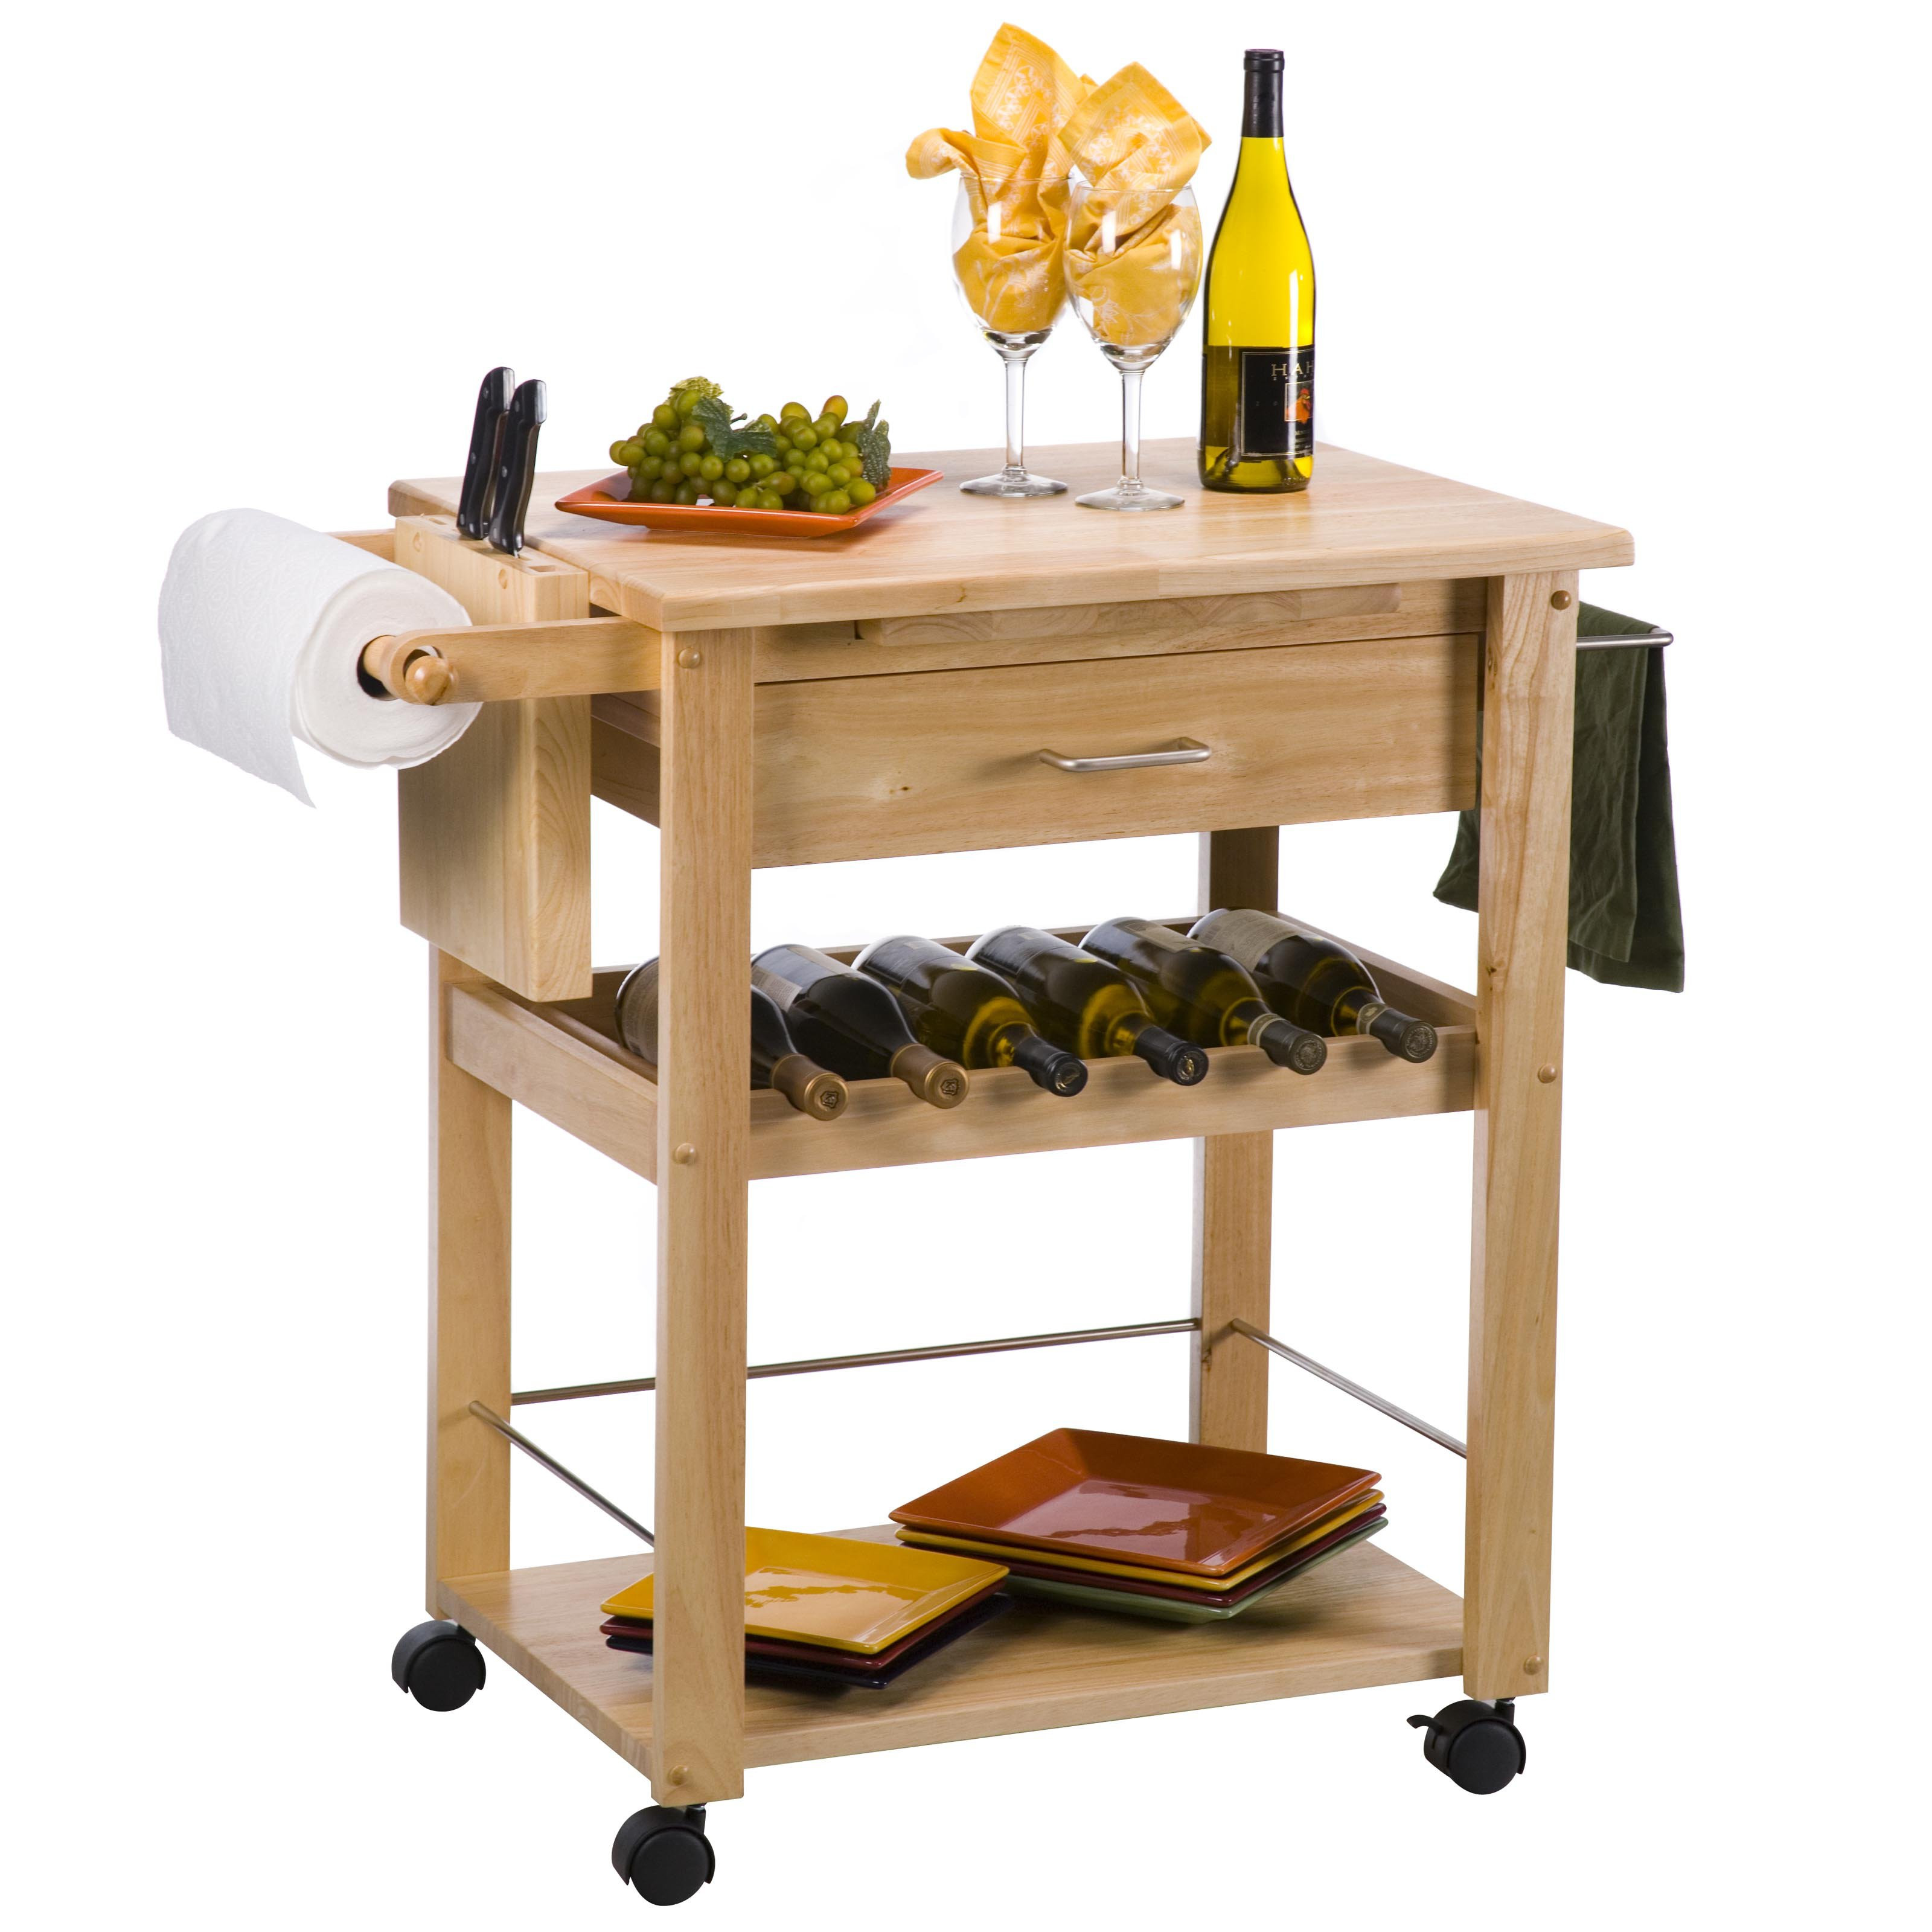 Best ideas about Kitchen Cart With Wine Rack . Save or Pin Gwendolyn Kitchen Cart Wine Rack at Hayneedle Now.